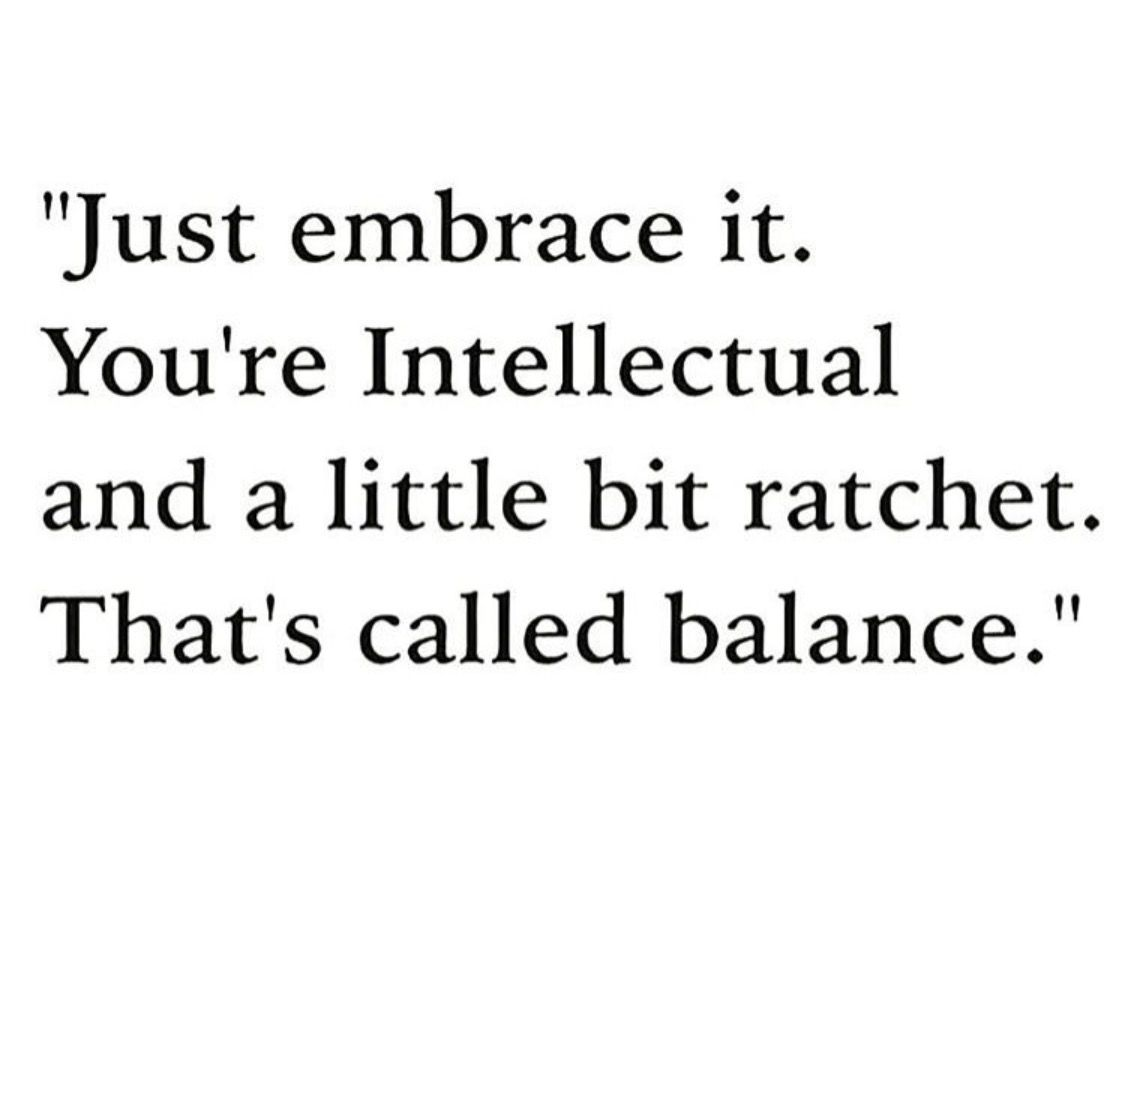 Intellectual And A Little Bit Ratchet Balance Funny Quotes Selfie Quotes Youth Quotes